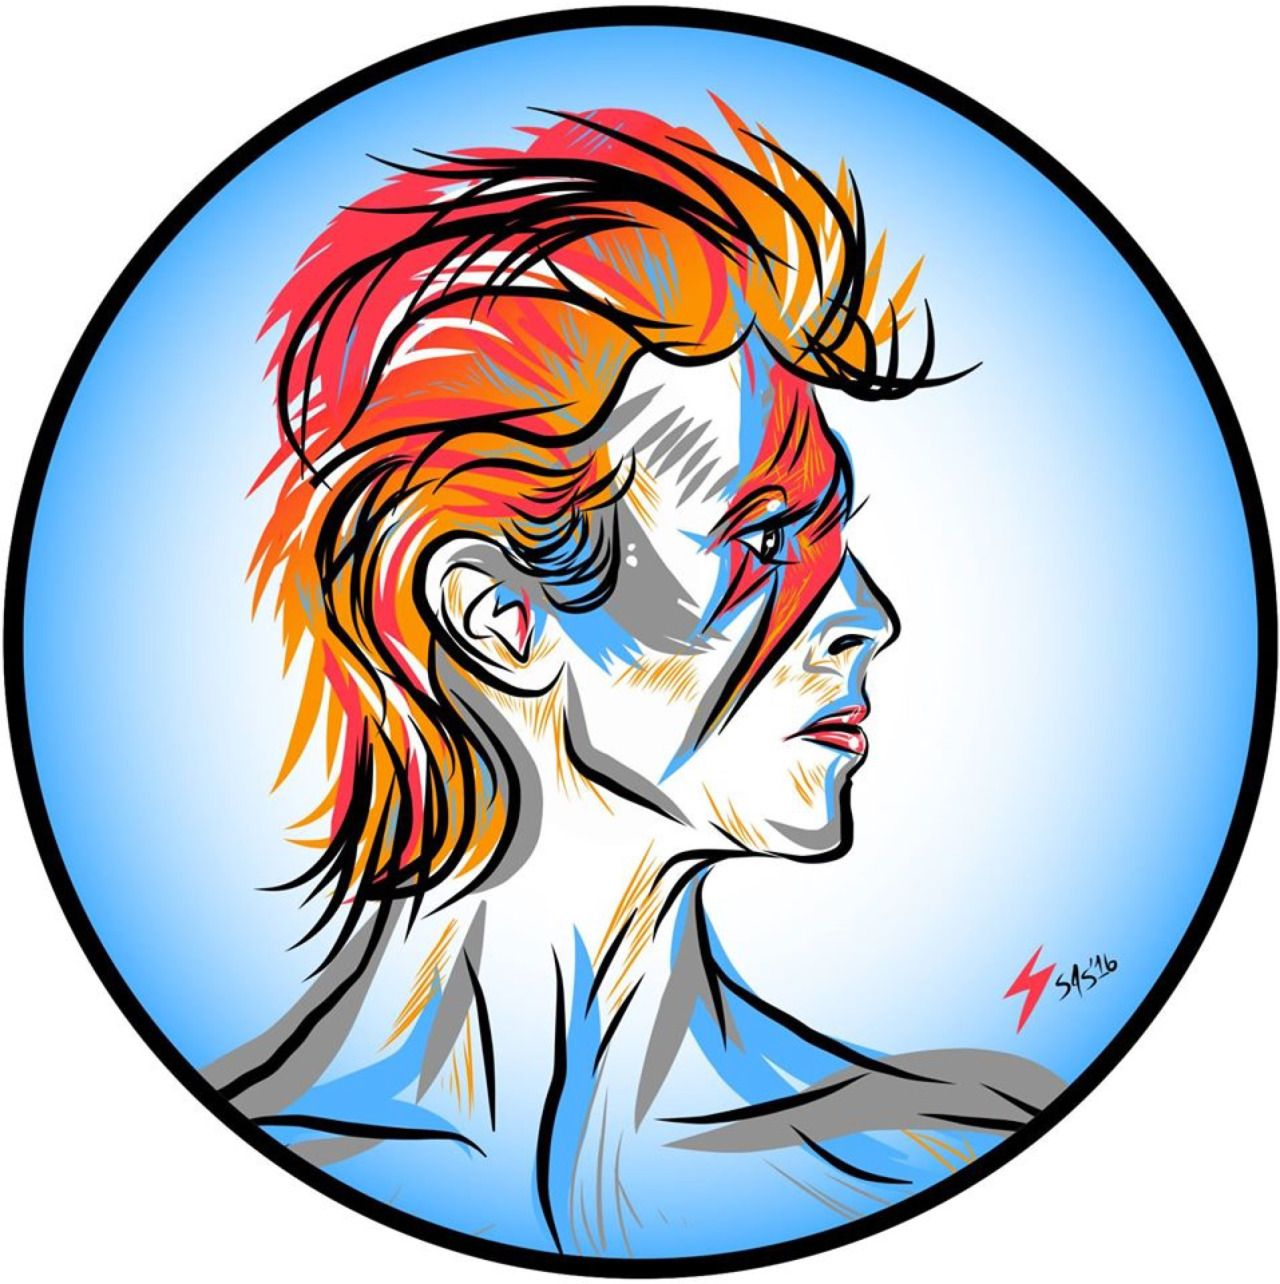 David Bowie Art Tumblr Tattoos Pinterest David Ideas And Designs